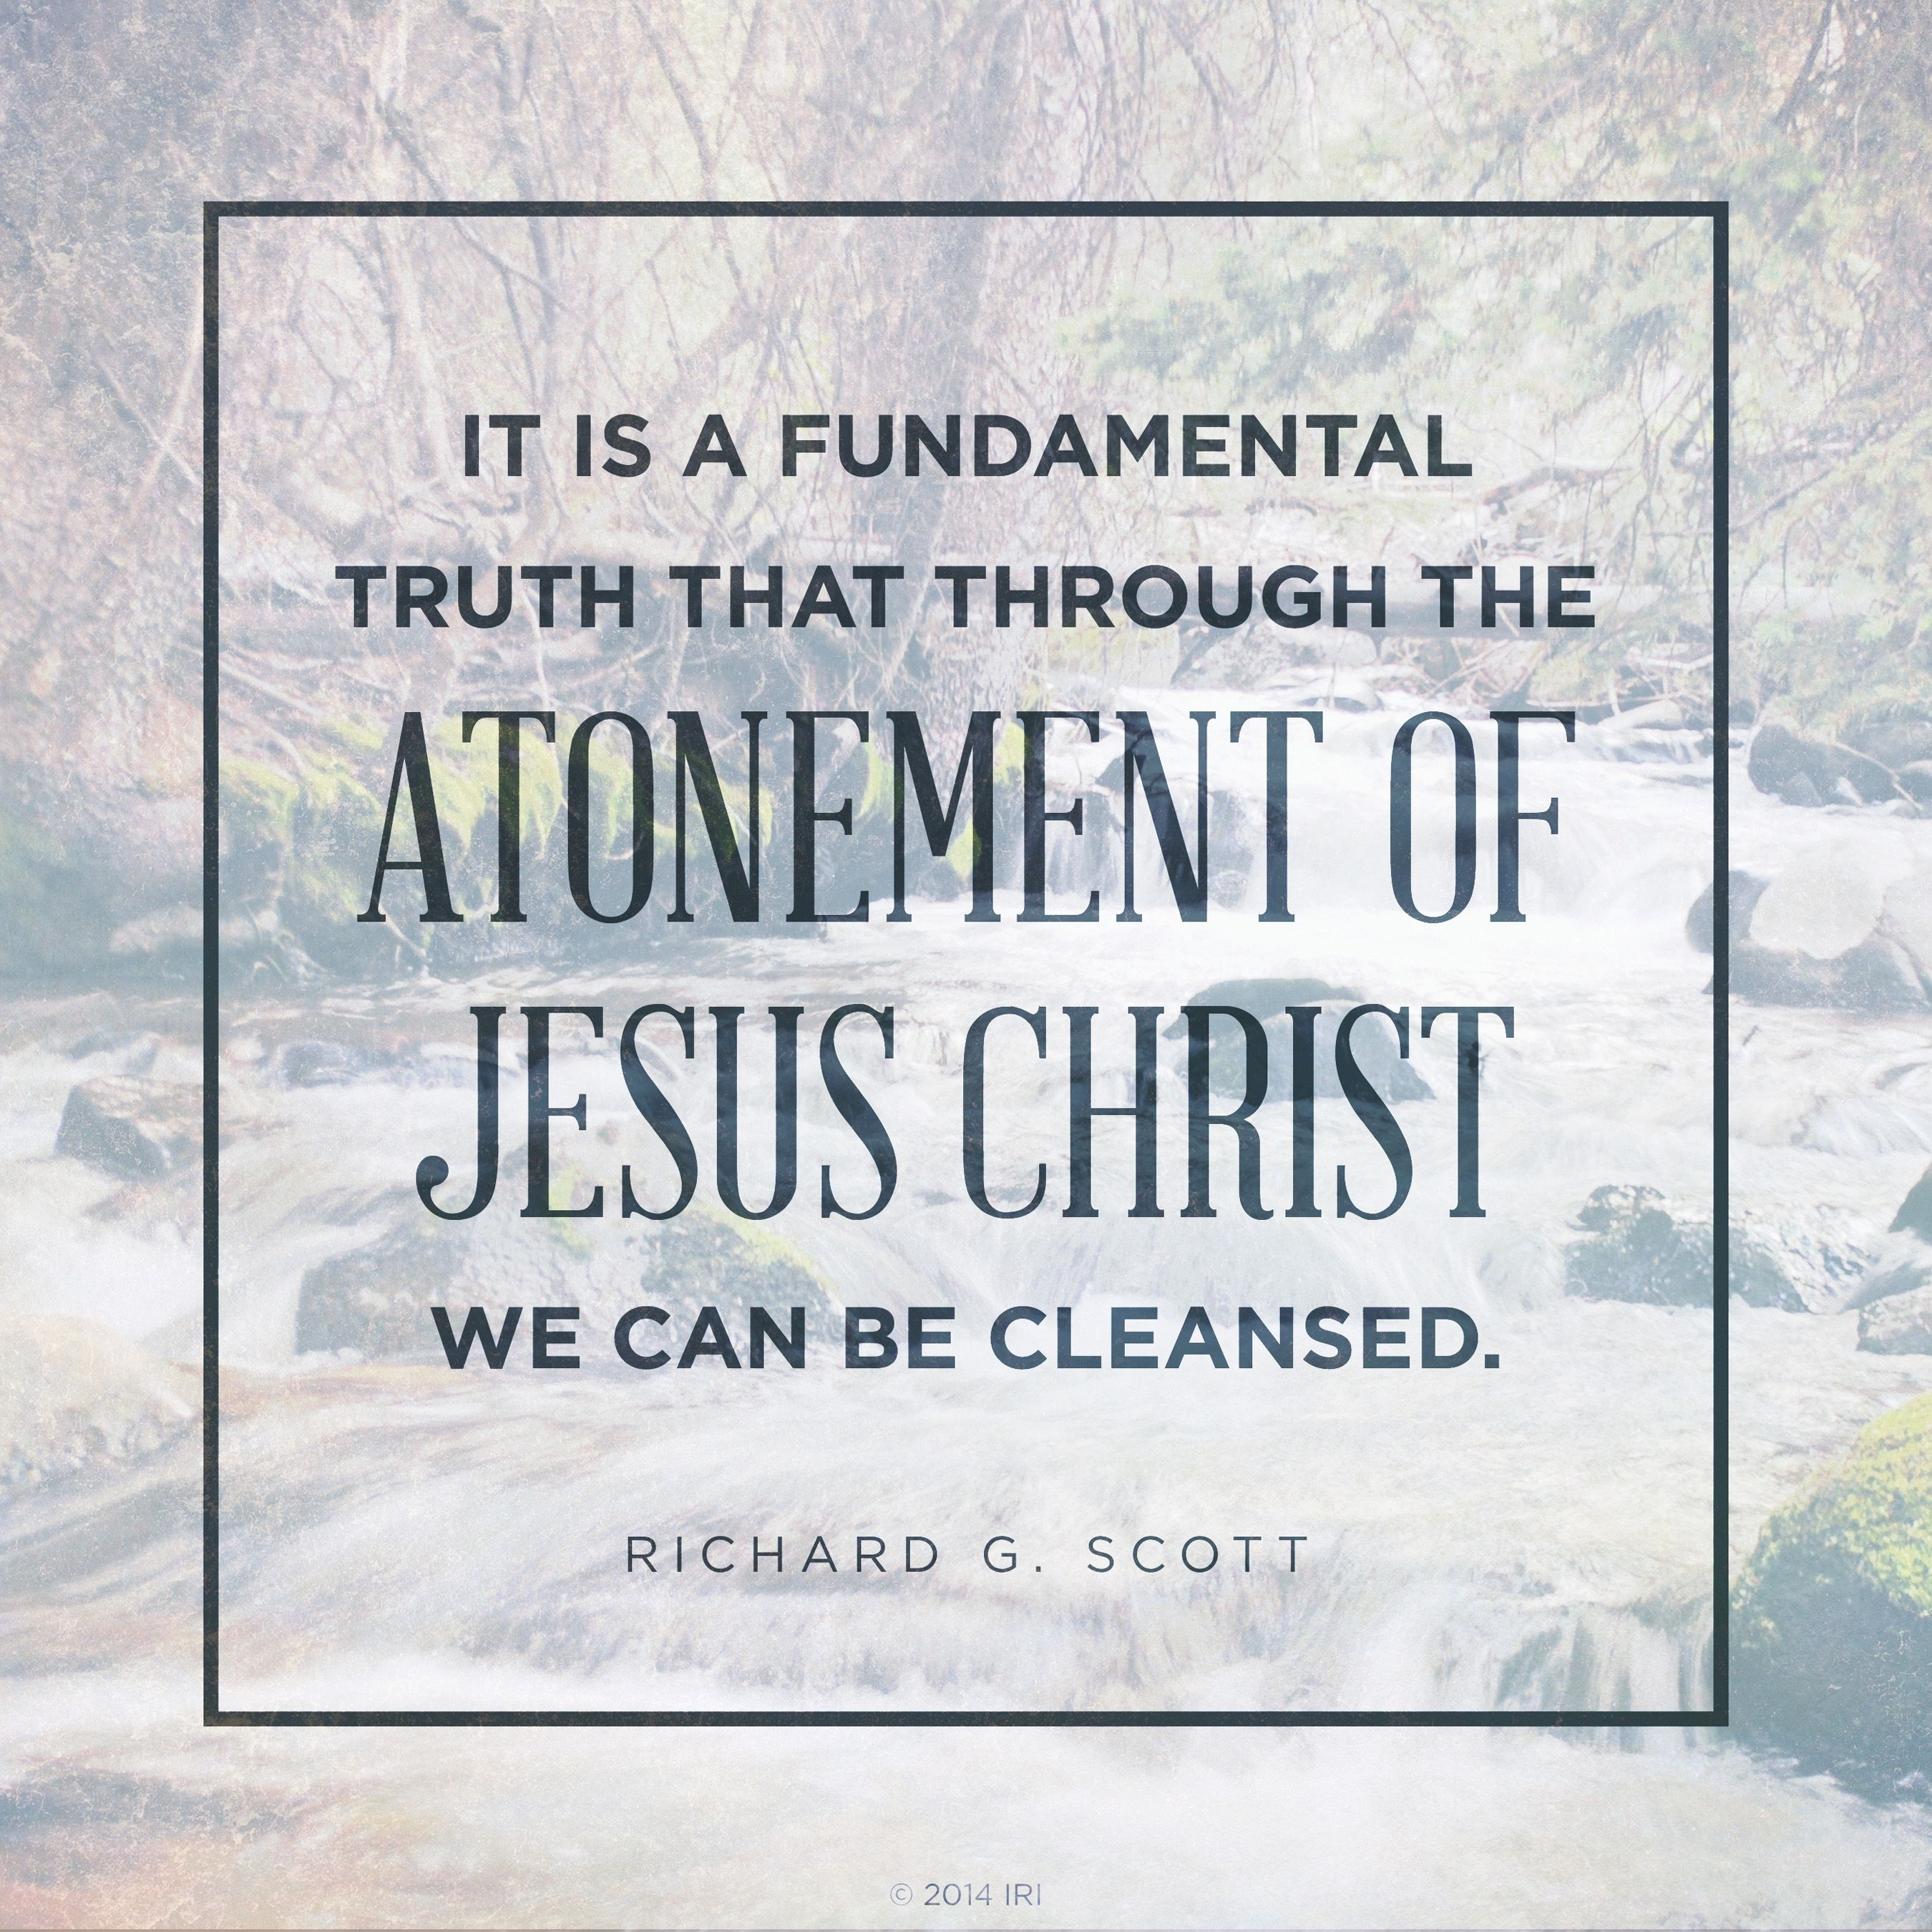 """An image of a river coupled with a quote by Elder Richard G. Scott: """"It is a fundamental truth that through the Atonement … we can be cleansed."""""""